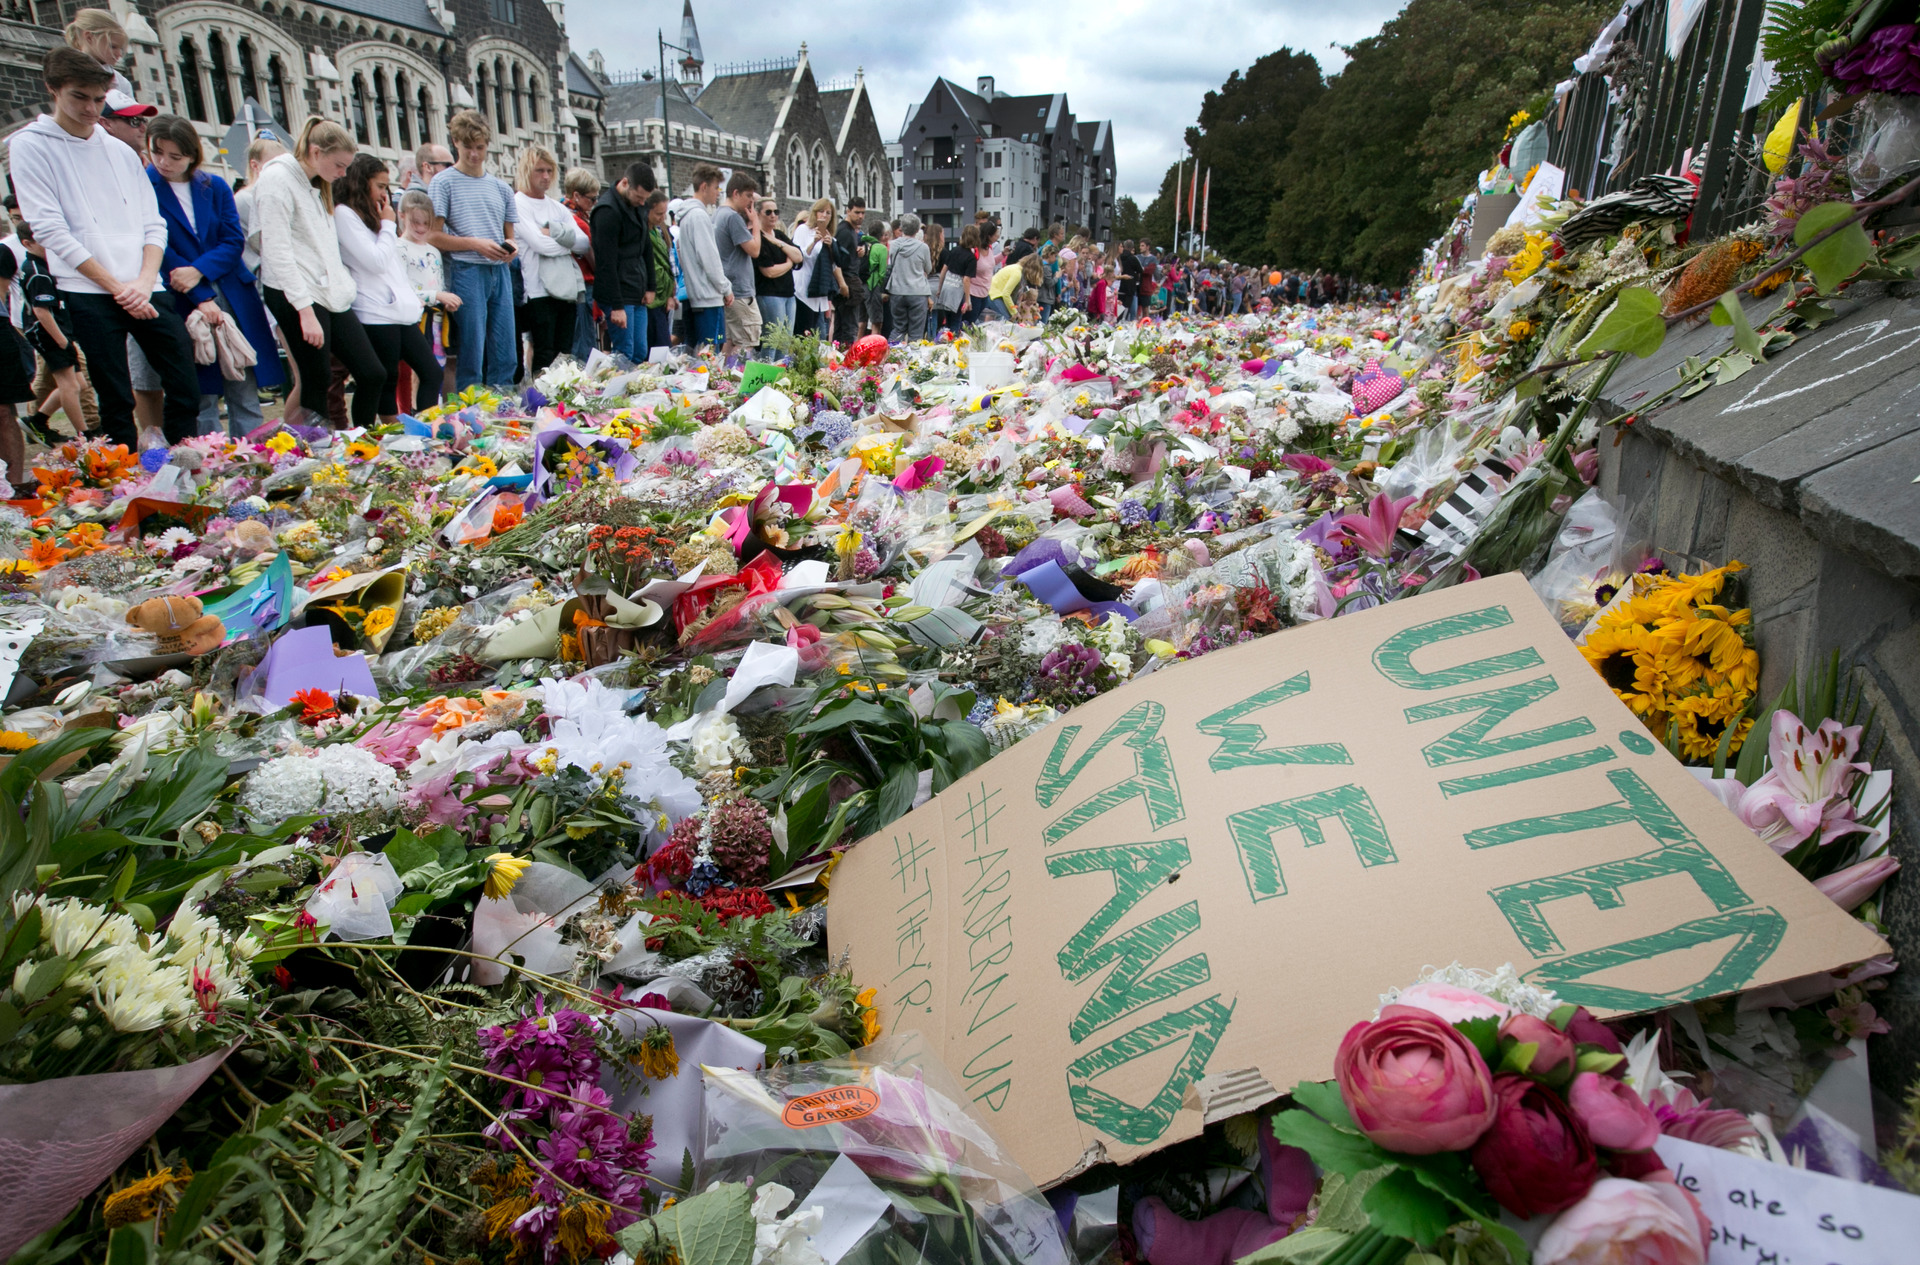 Spotify playlists glorify Christchurch mosque attacks